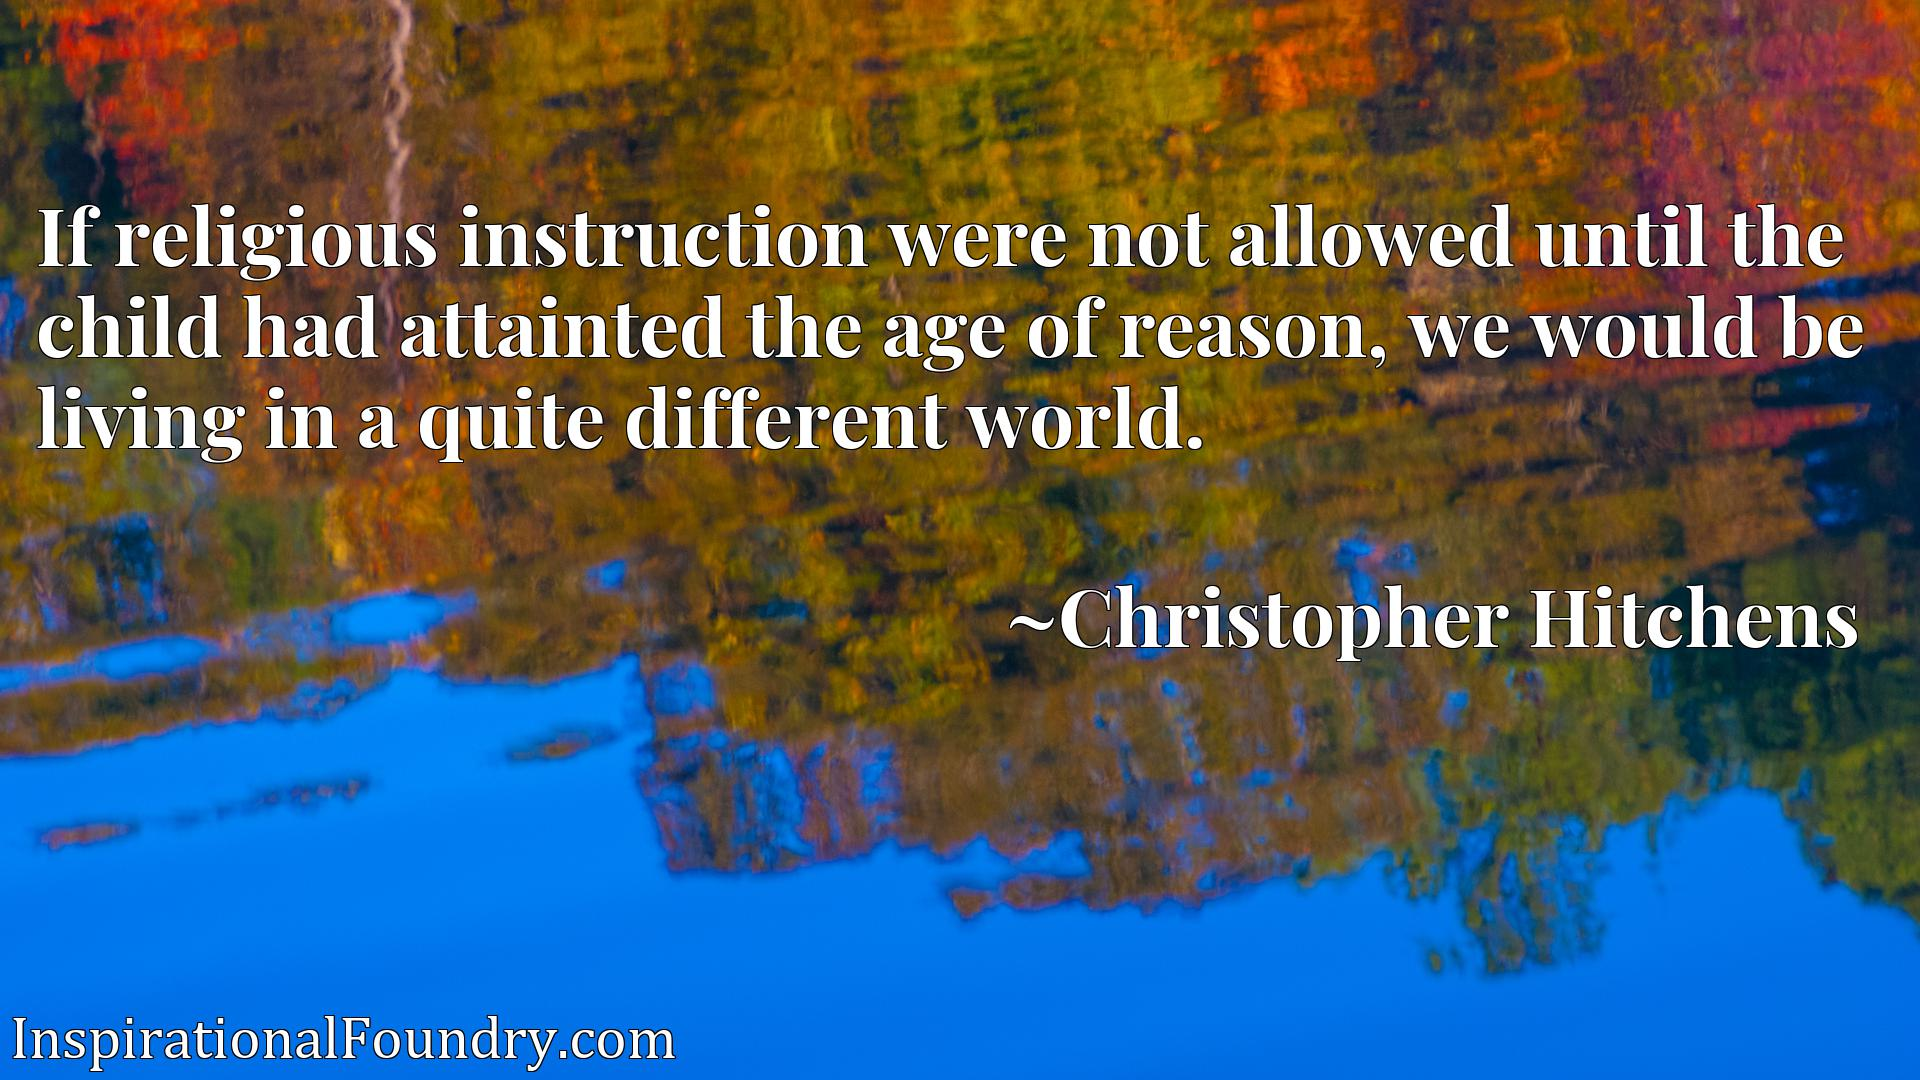 If religious instruction were not allowed until the child had attainted the age of reason, we would be living in a quite different world.